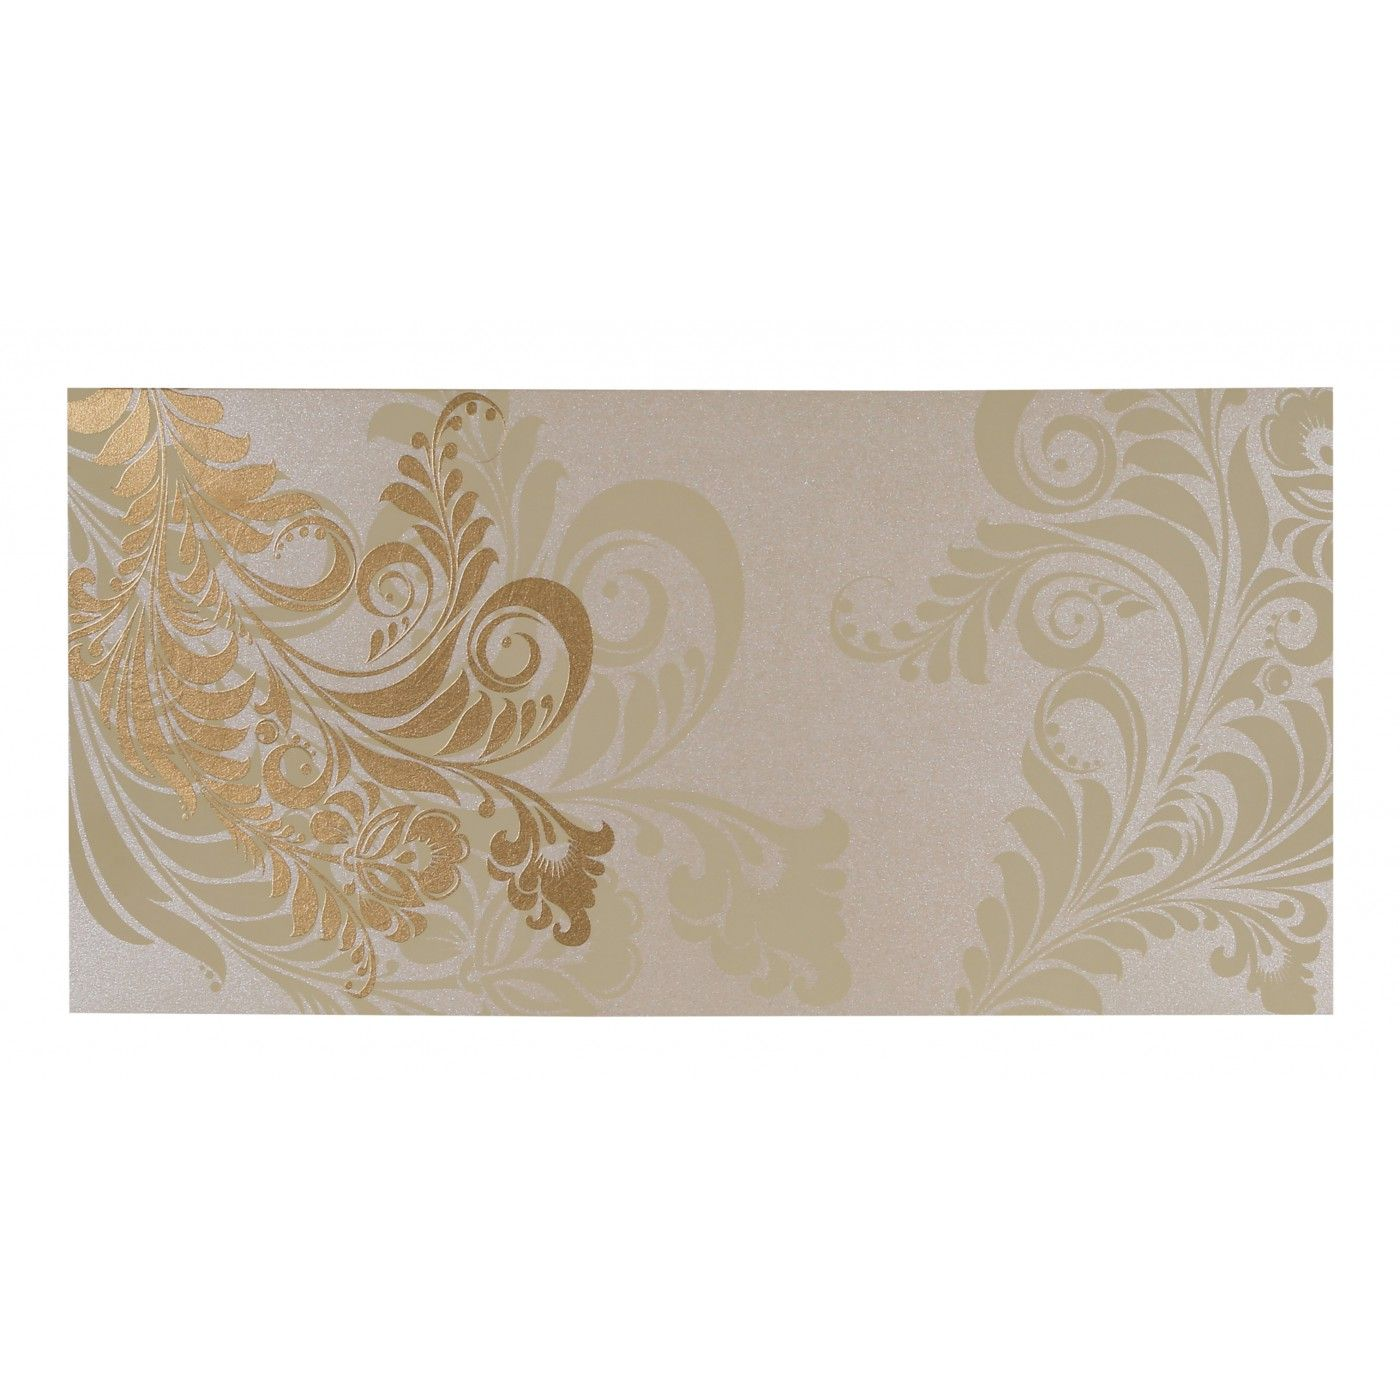 IVORY SHIMMERY FLORAL THEMED - SCREEN PRINTED WEDDING CARD : CW-8259A - IndianWeddingCards